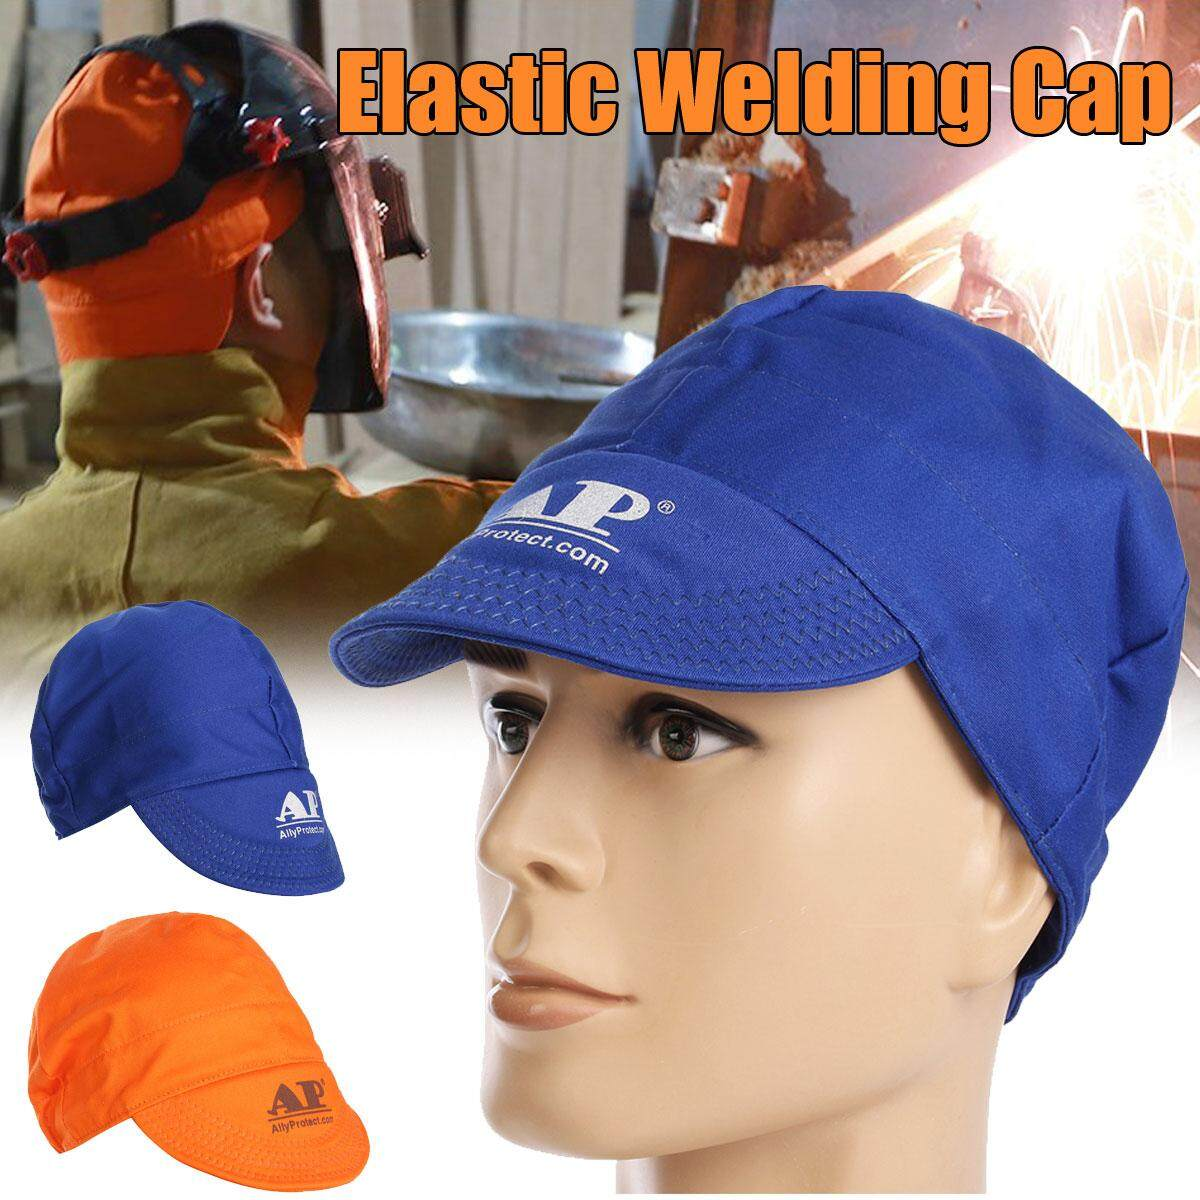 5PCS Universal Elastic Welding Welder Flame Retardant Cloth Hat Cap Head Protection Blue